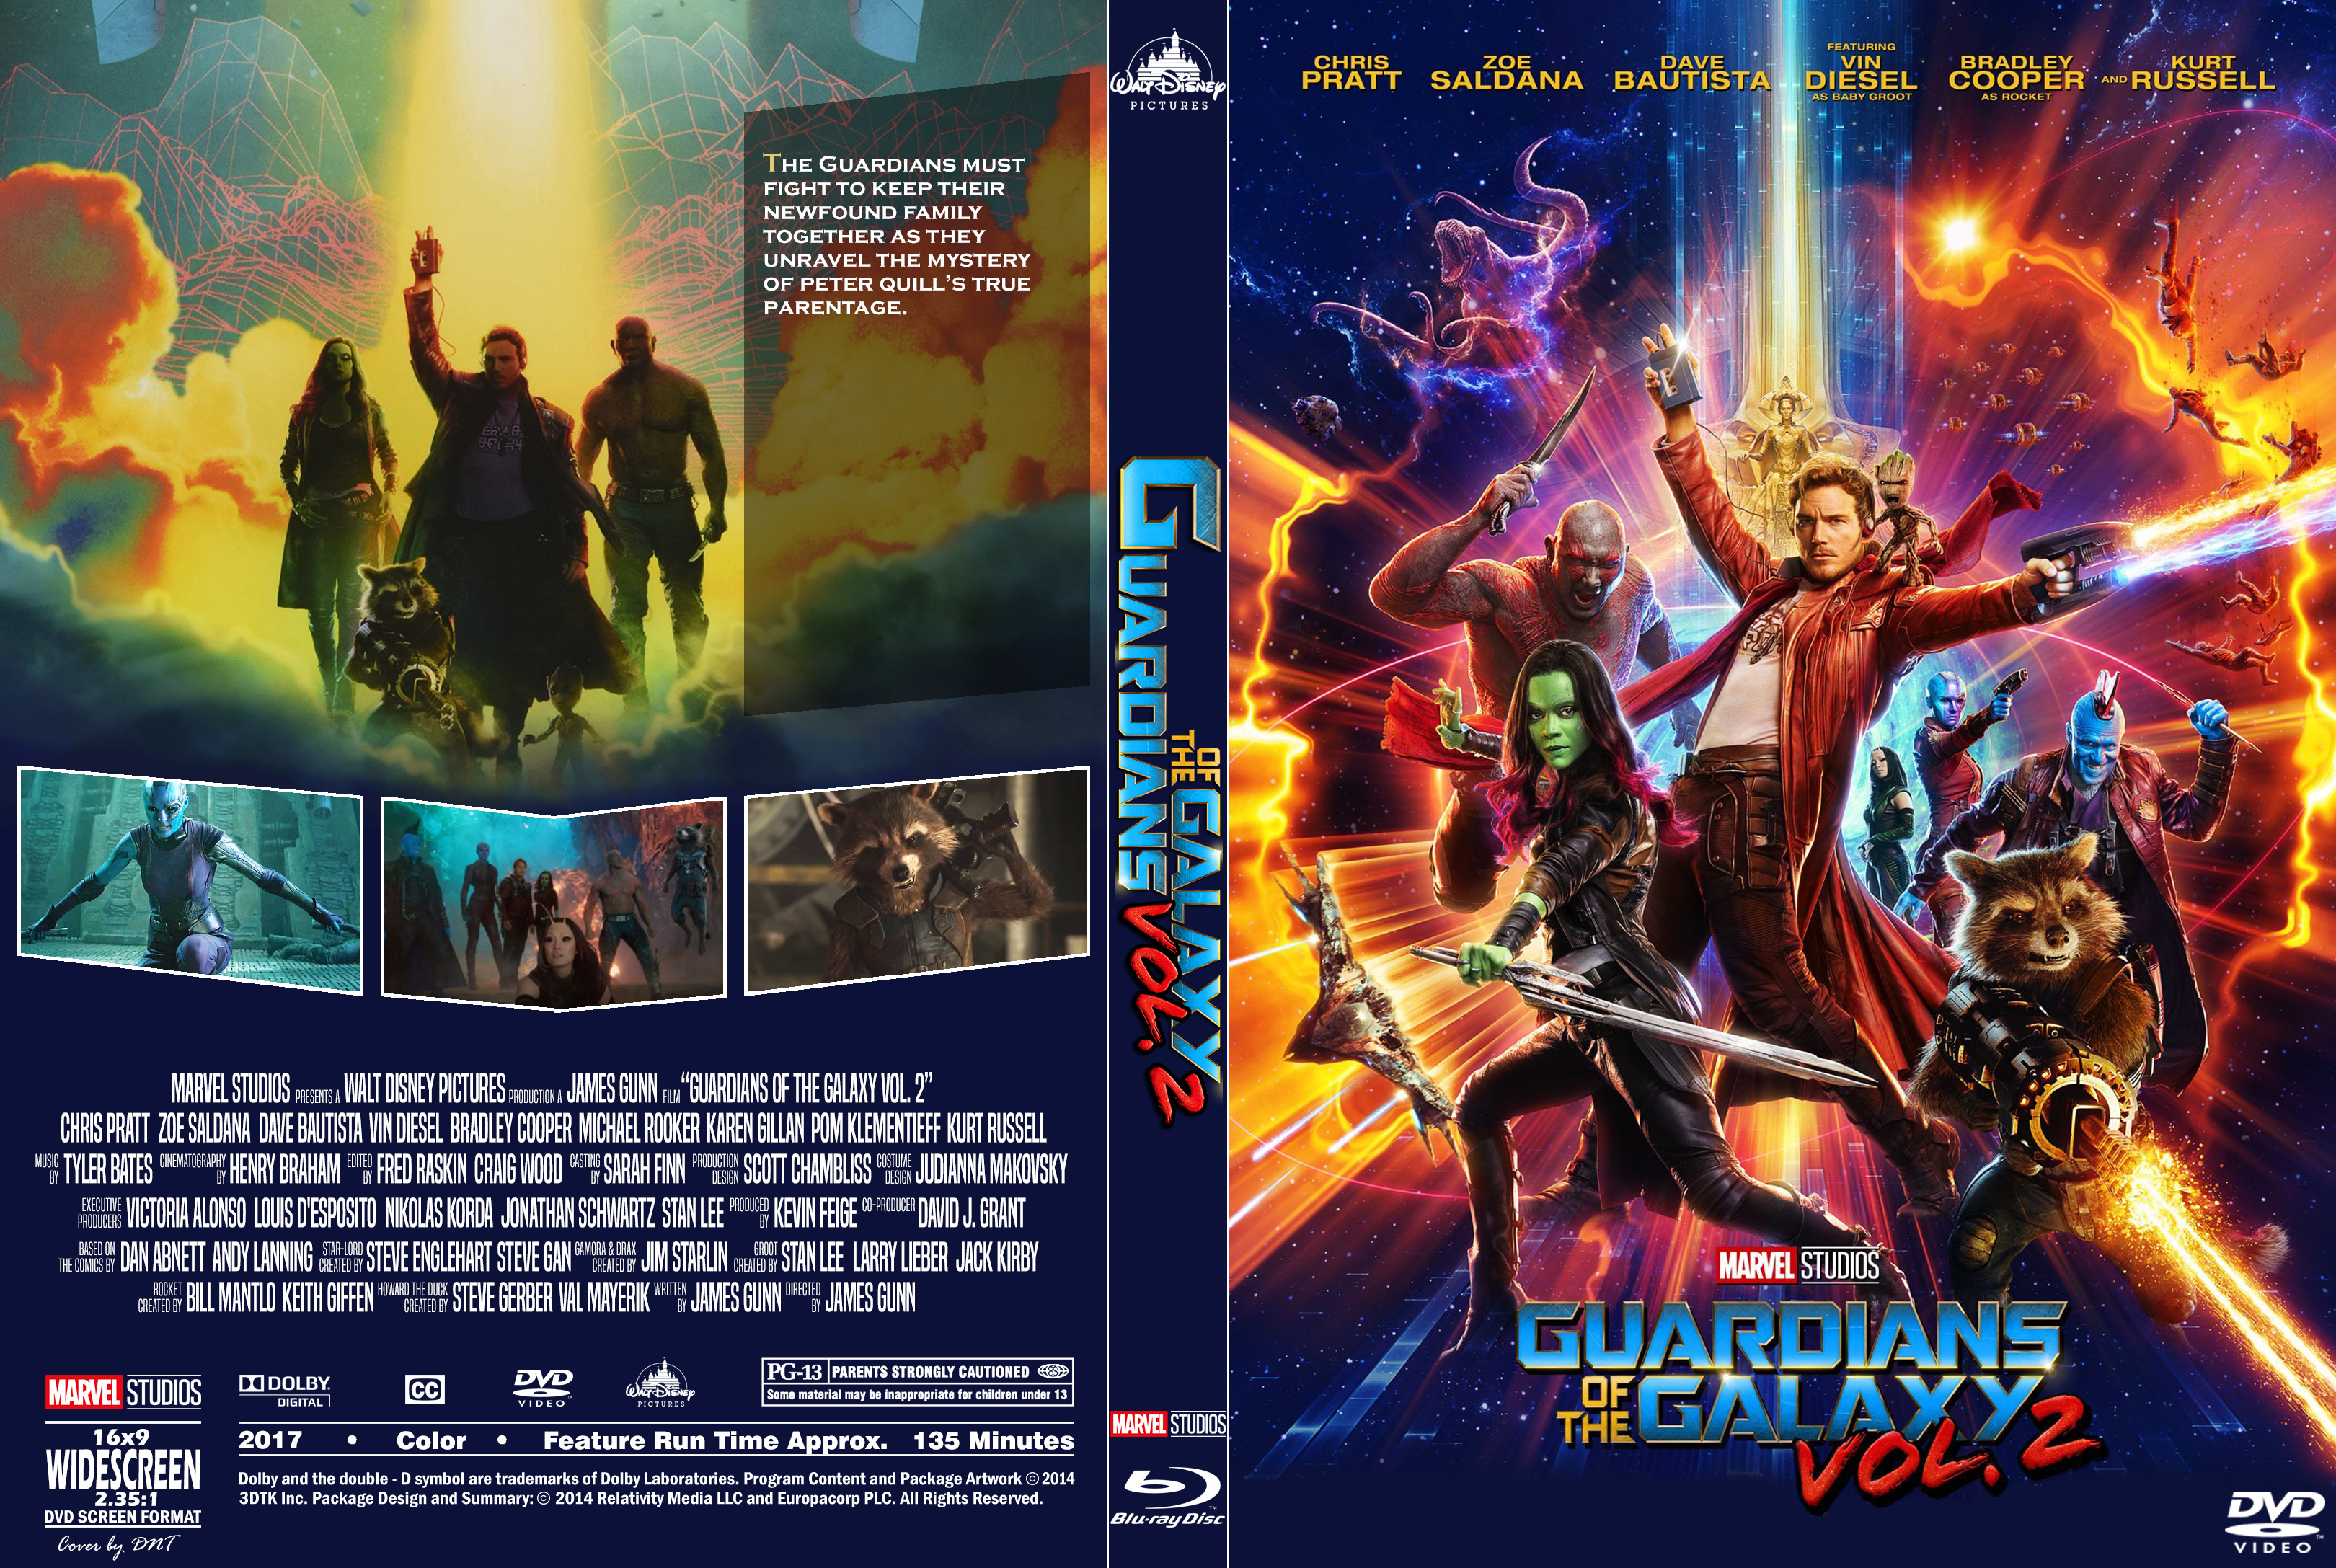 Covers Box Sk Guardians Of The Galaxy Vol 2 2017 High Quality Dvd Blueray Movie